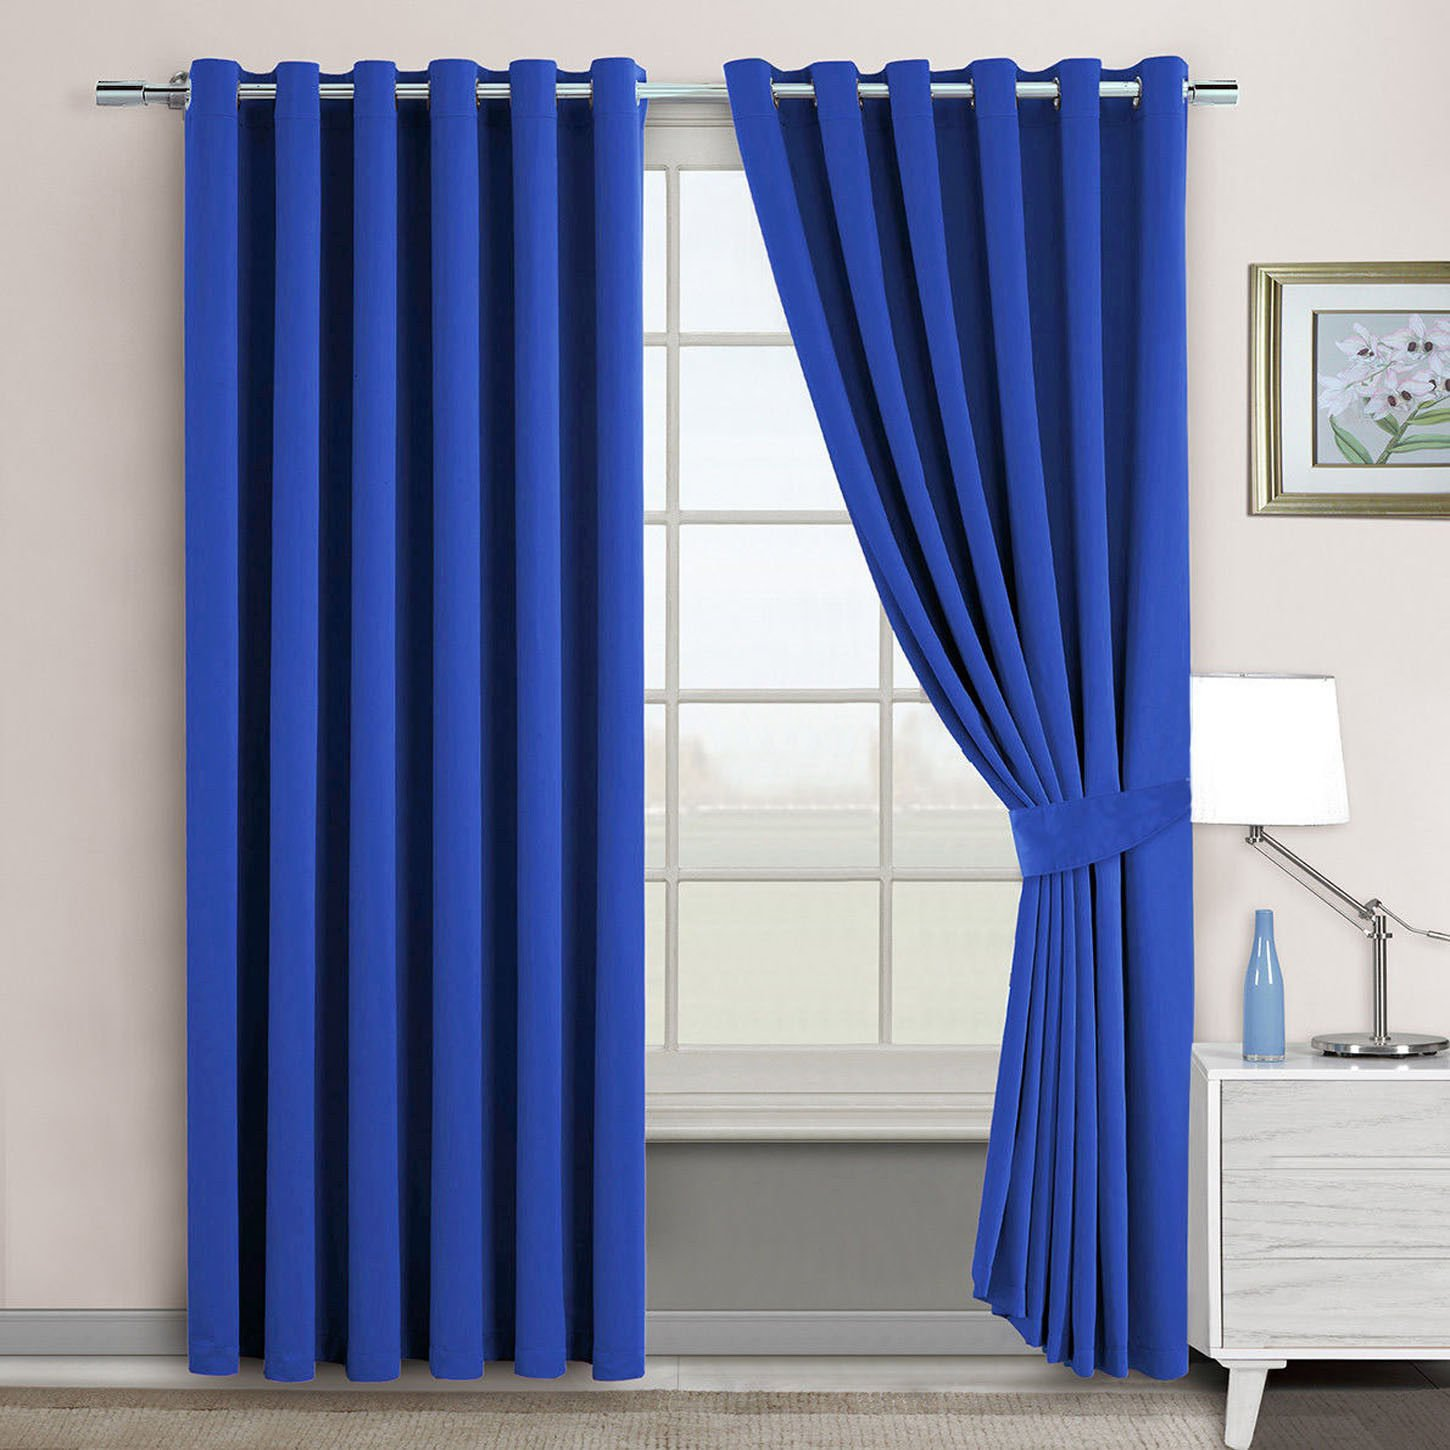 Blue, 46 x 54 Blue Eyelet Blackout Thermal Curtains Window Blinds Dark Room Curtains with Tiebacks